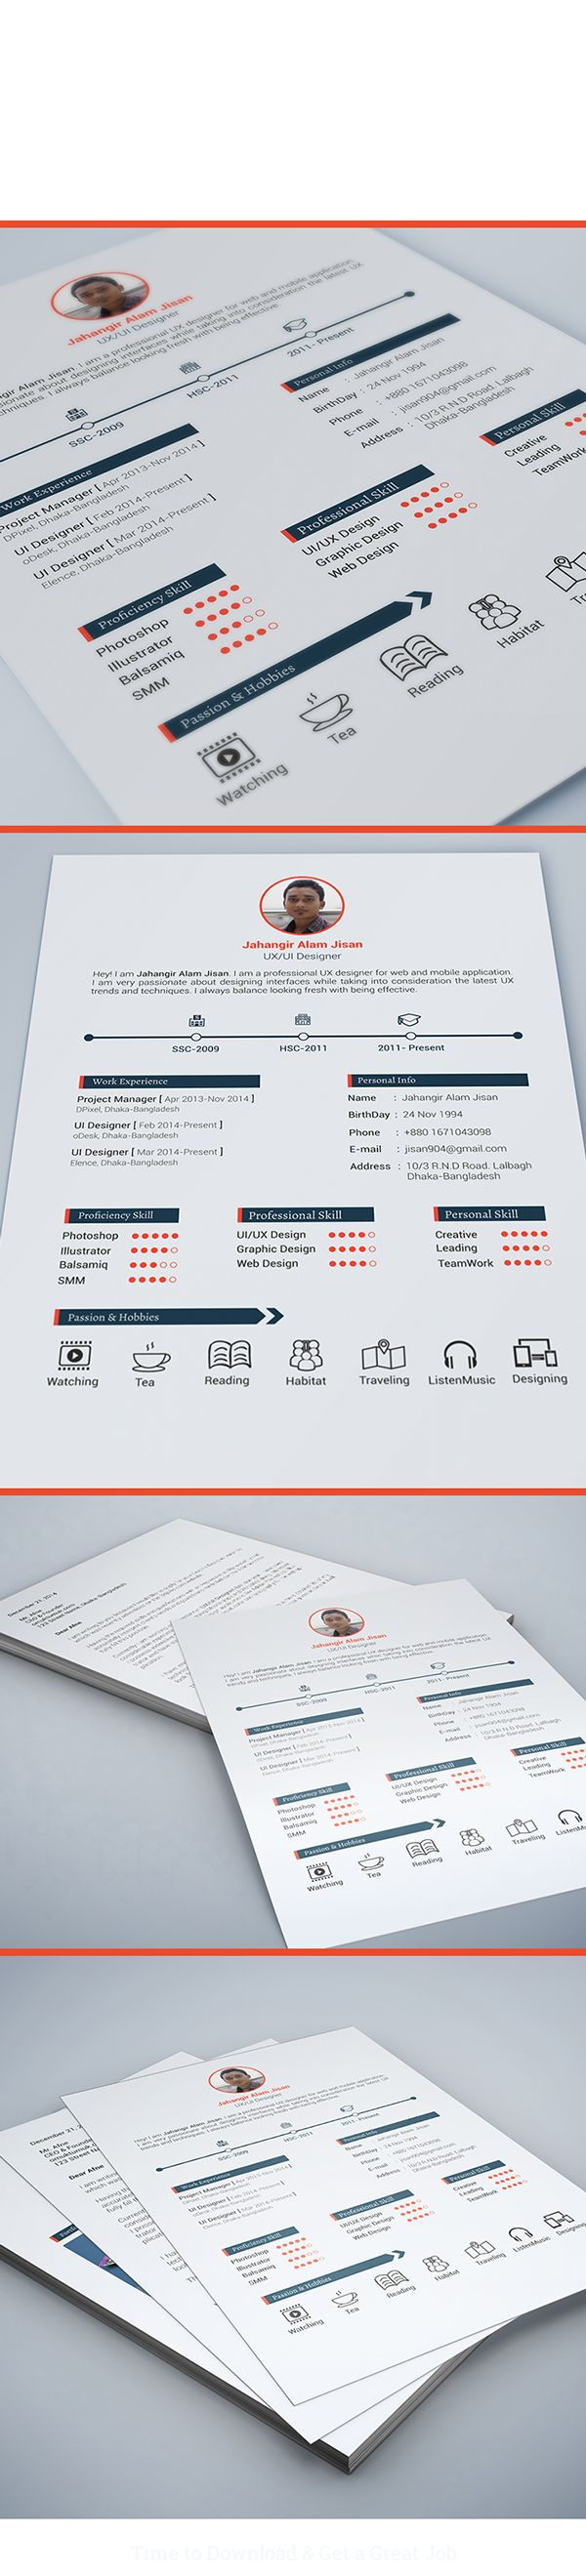 best ideas about cv template cv design resume template 3 page on behance